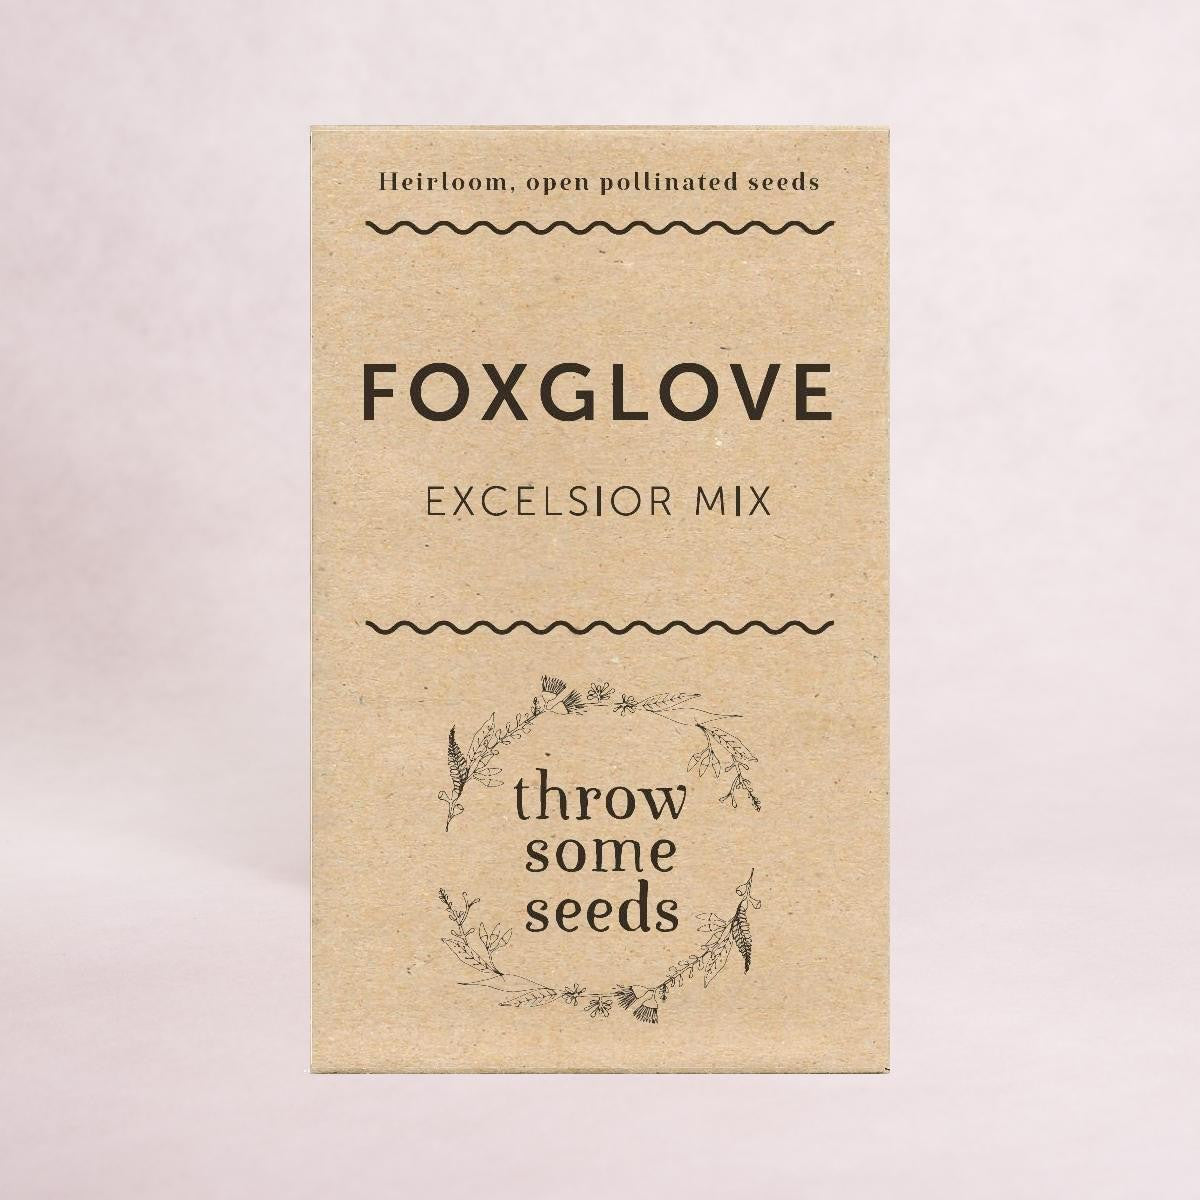 Foxglove (Excelsior mix) Seeds - Seeds - Throw Some Seeds - Australian gardening gifts and eco products online!